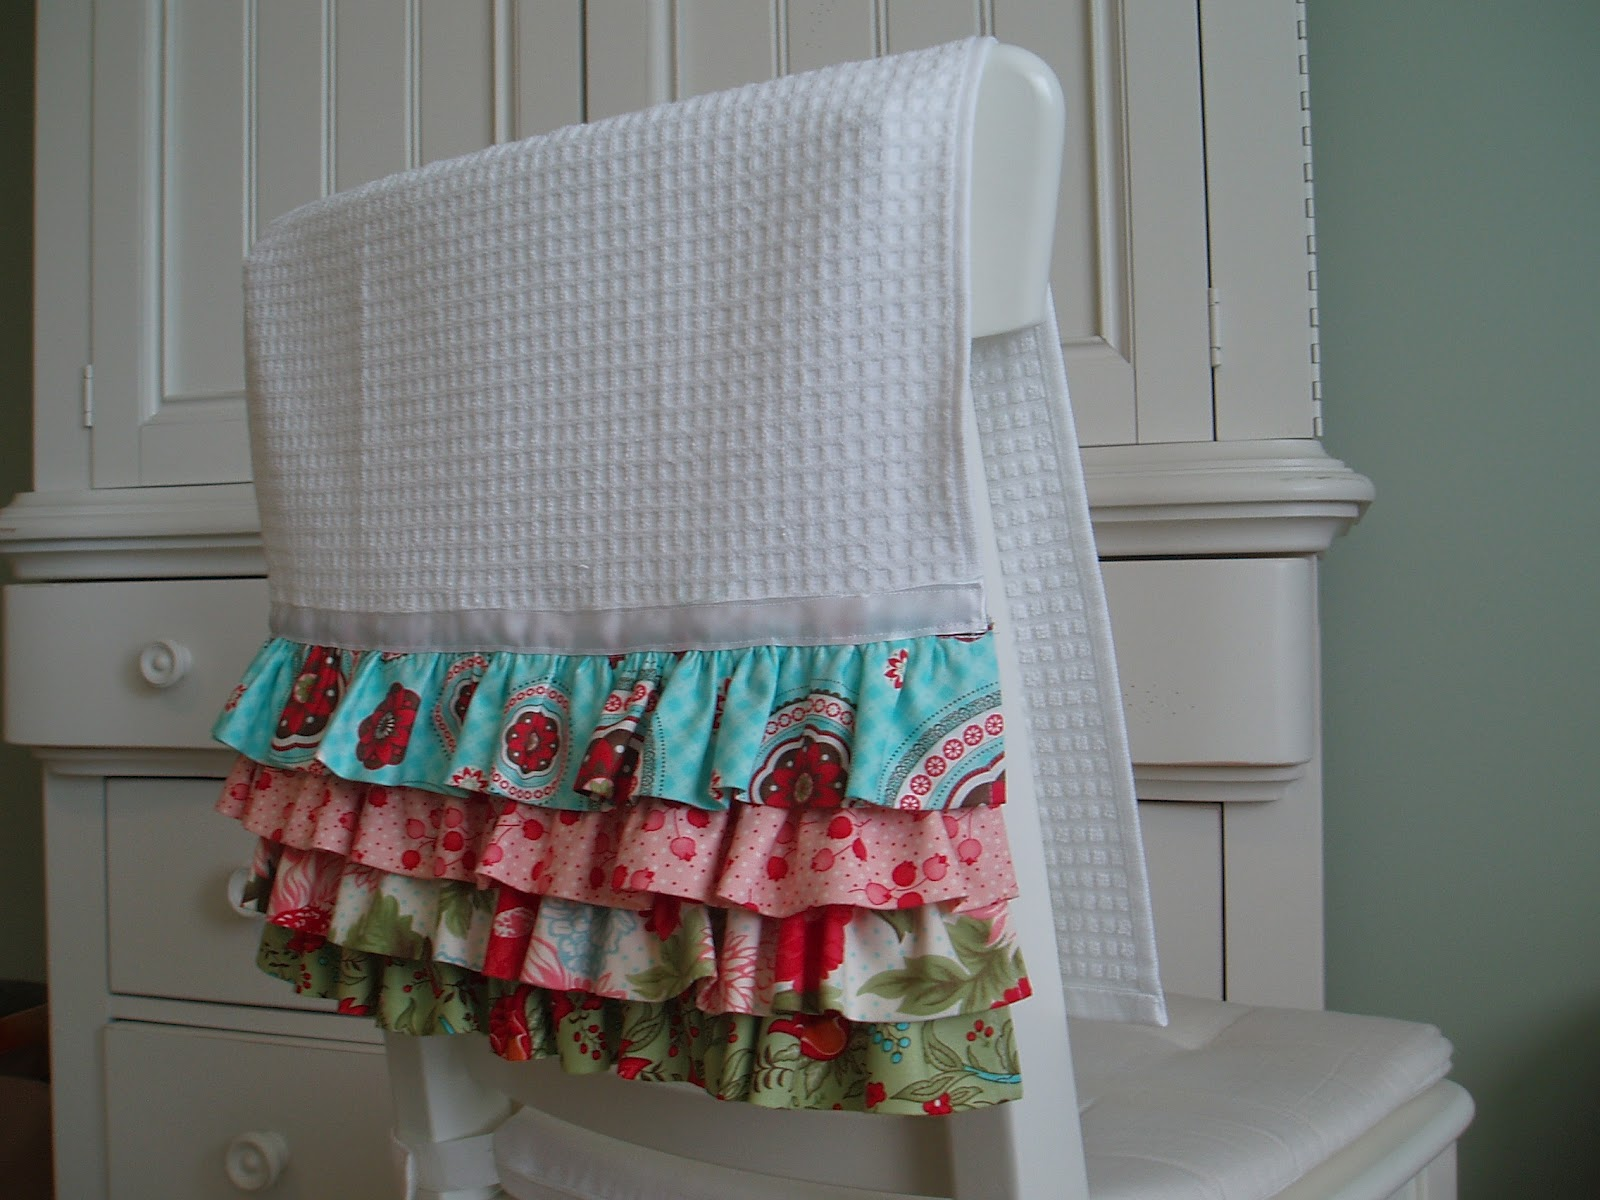 Craft Room Confidential: Ruffled Kitchen Towel